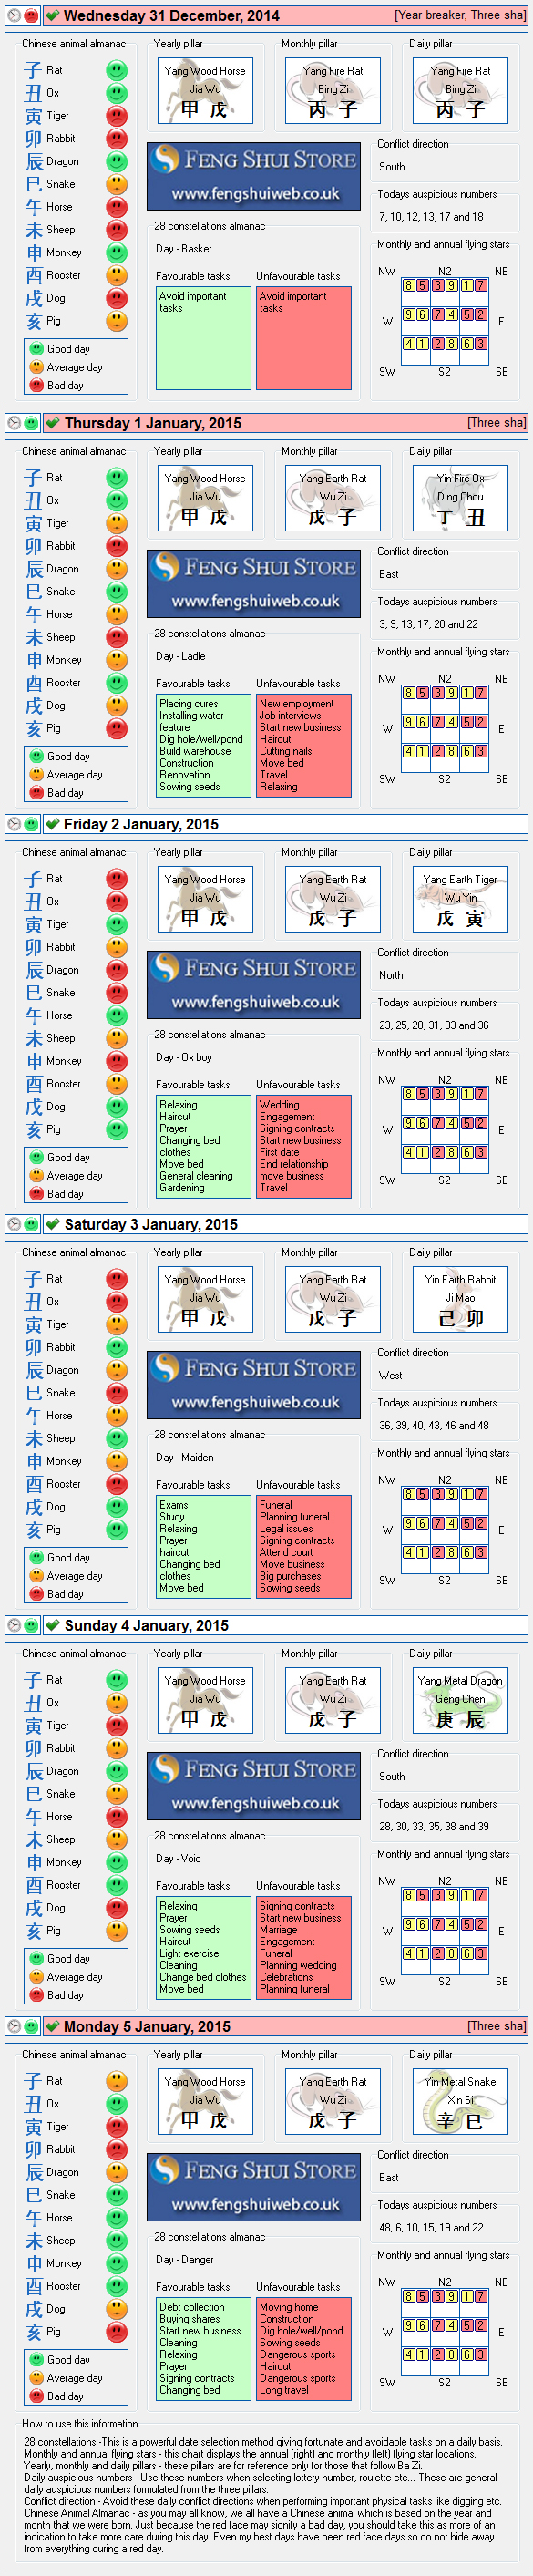 Tong Shu Almanac for Wednesday 31st December 2014 - Monday 5th January 2015